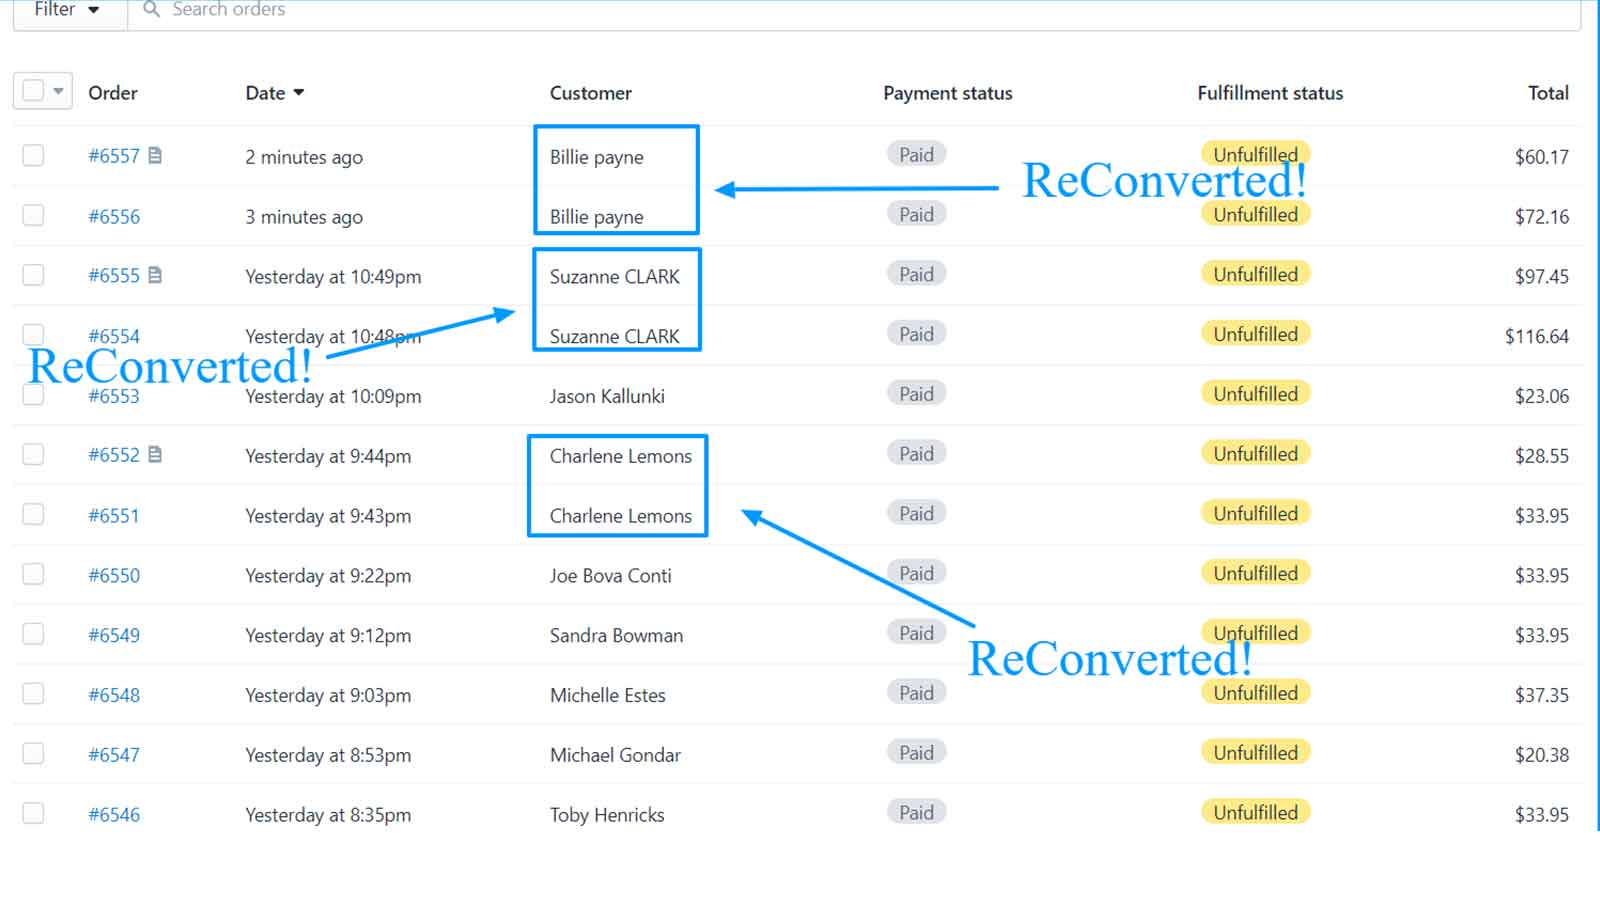 ReConvert orders - increasing conversion rates and retention